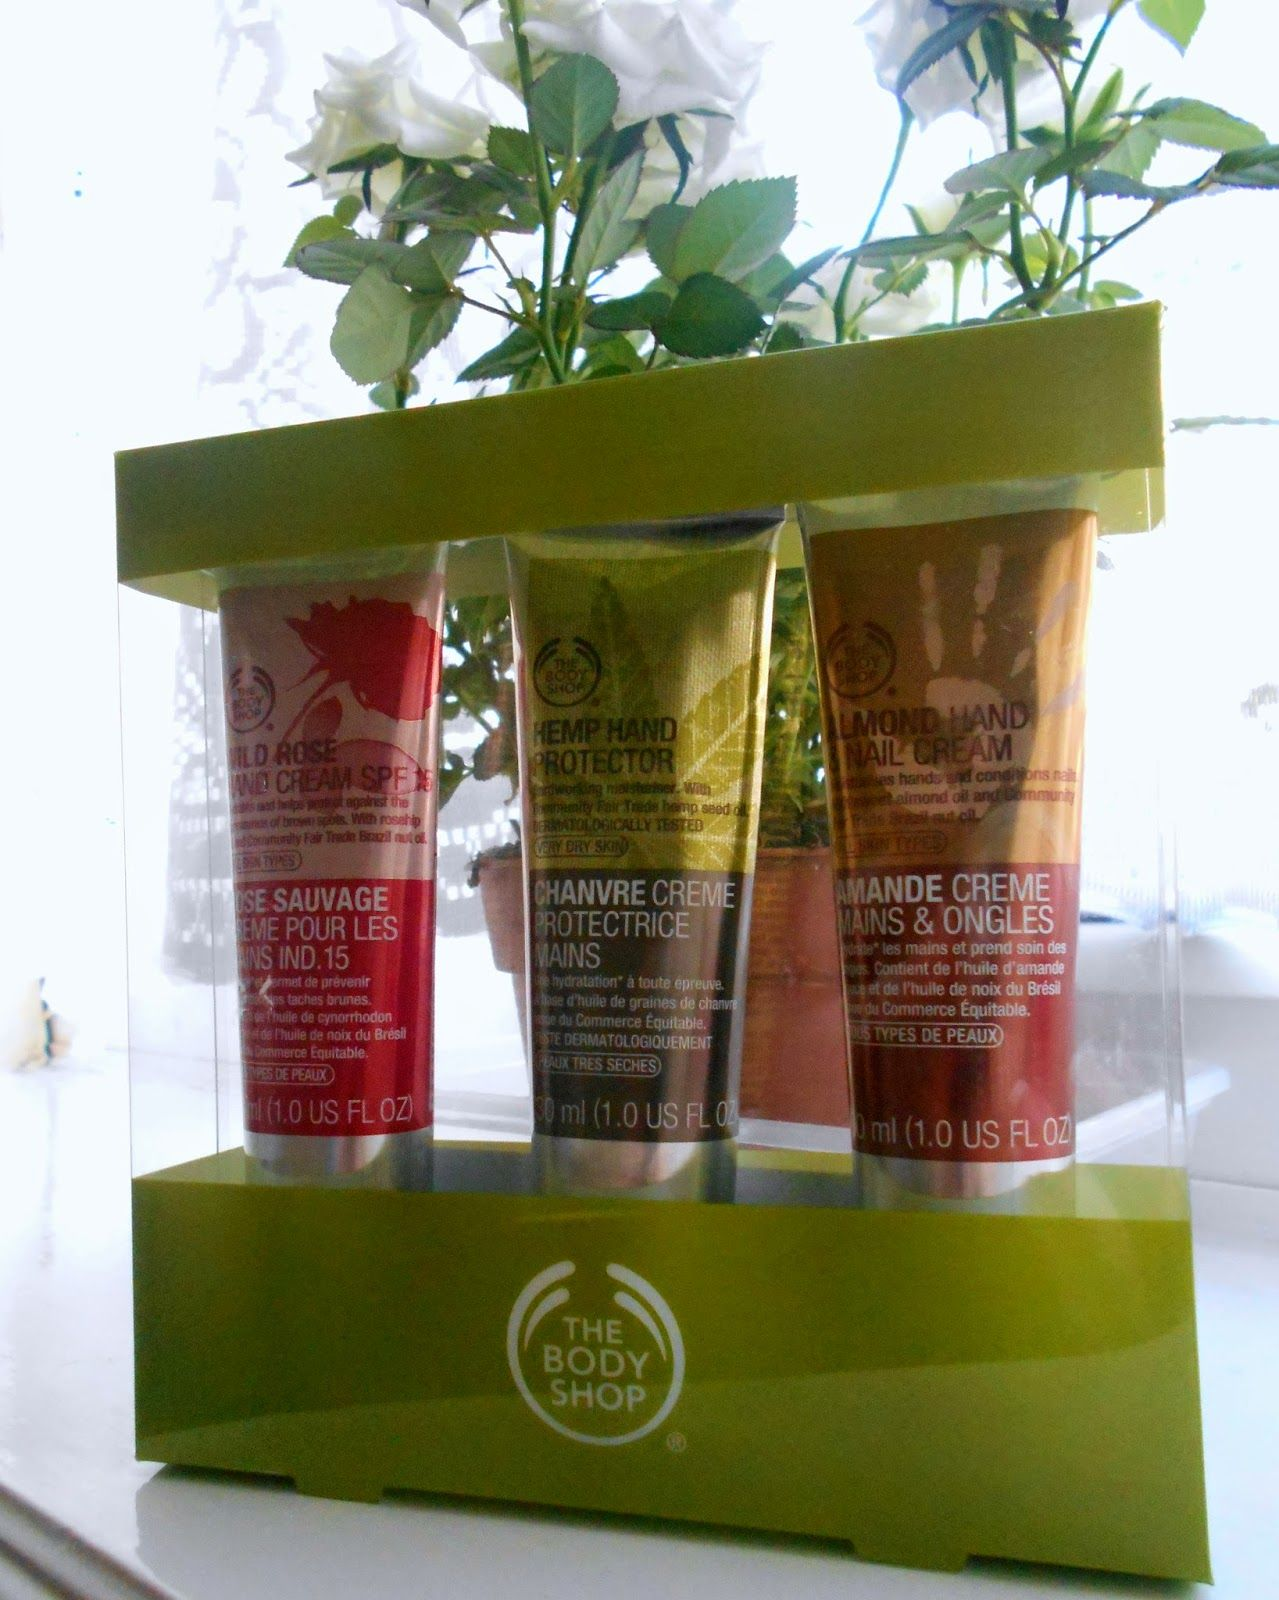 The Body Shop Wild Rose Hand Cream Hemp Hand Protector And